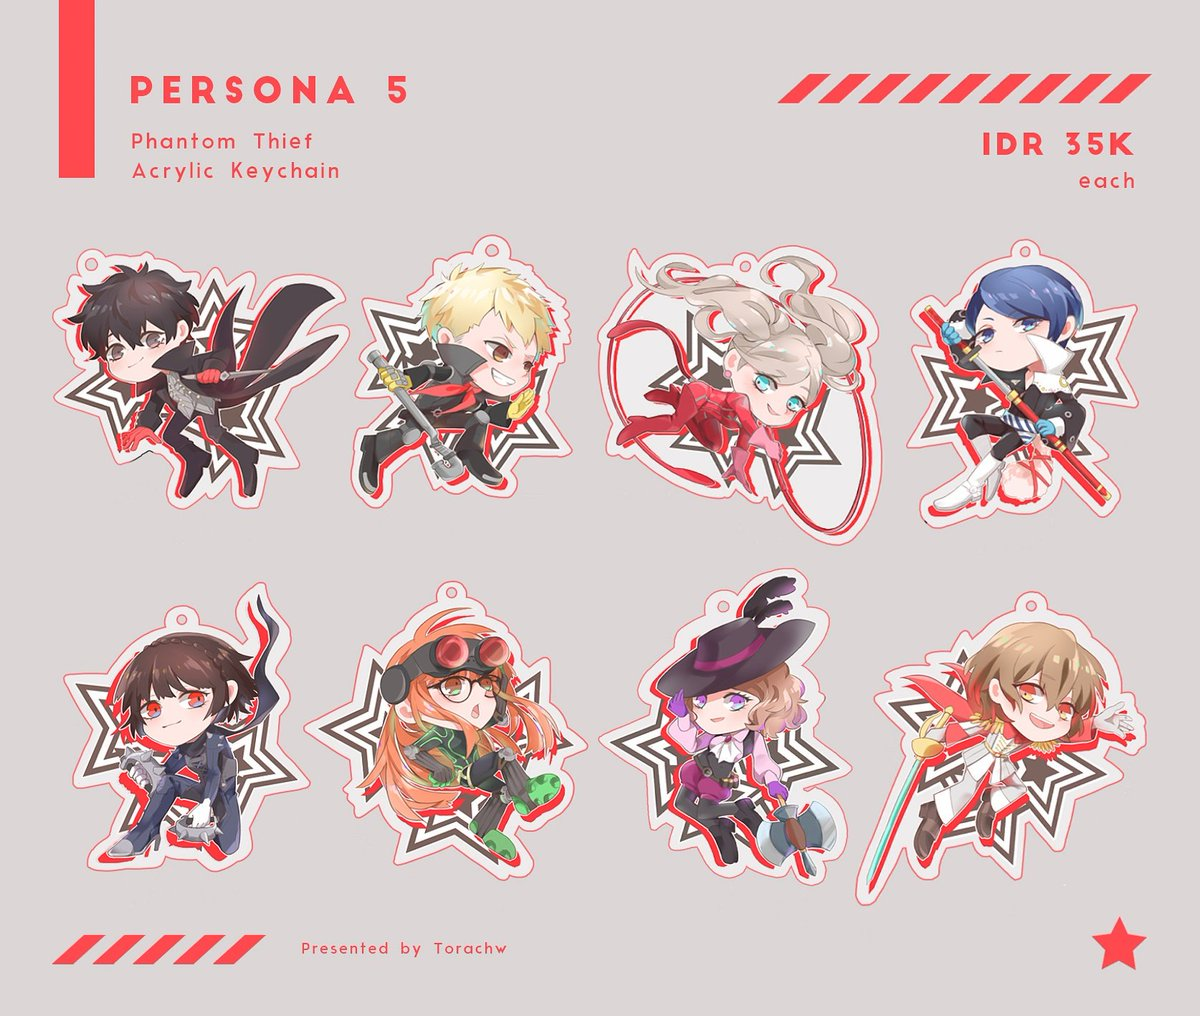 [RT] Open local PO Persona Acrylic Keychain also av for #comifuro9 #comifuro #cf9 pick up at ANPAN booth 35-36!!  https:// goo.gl/forms/lkWfVJj2 7xKDyy6p1 &nbsp; … <br>http://pic.twitter.com/aBPGFjg5Sc